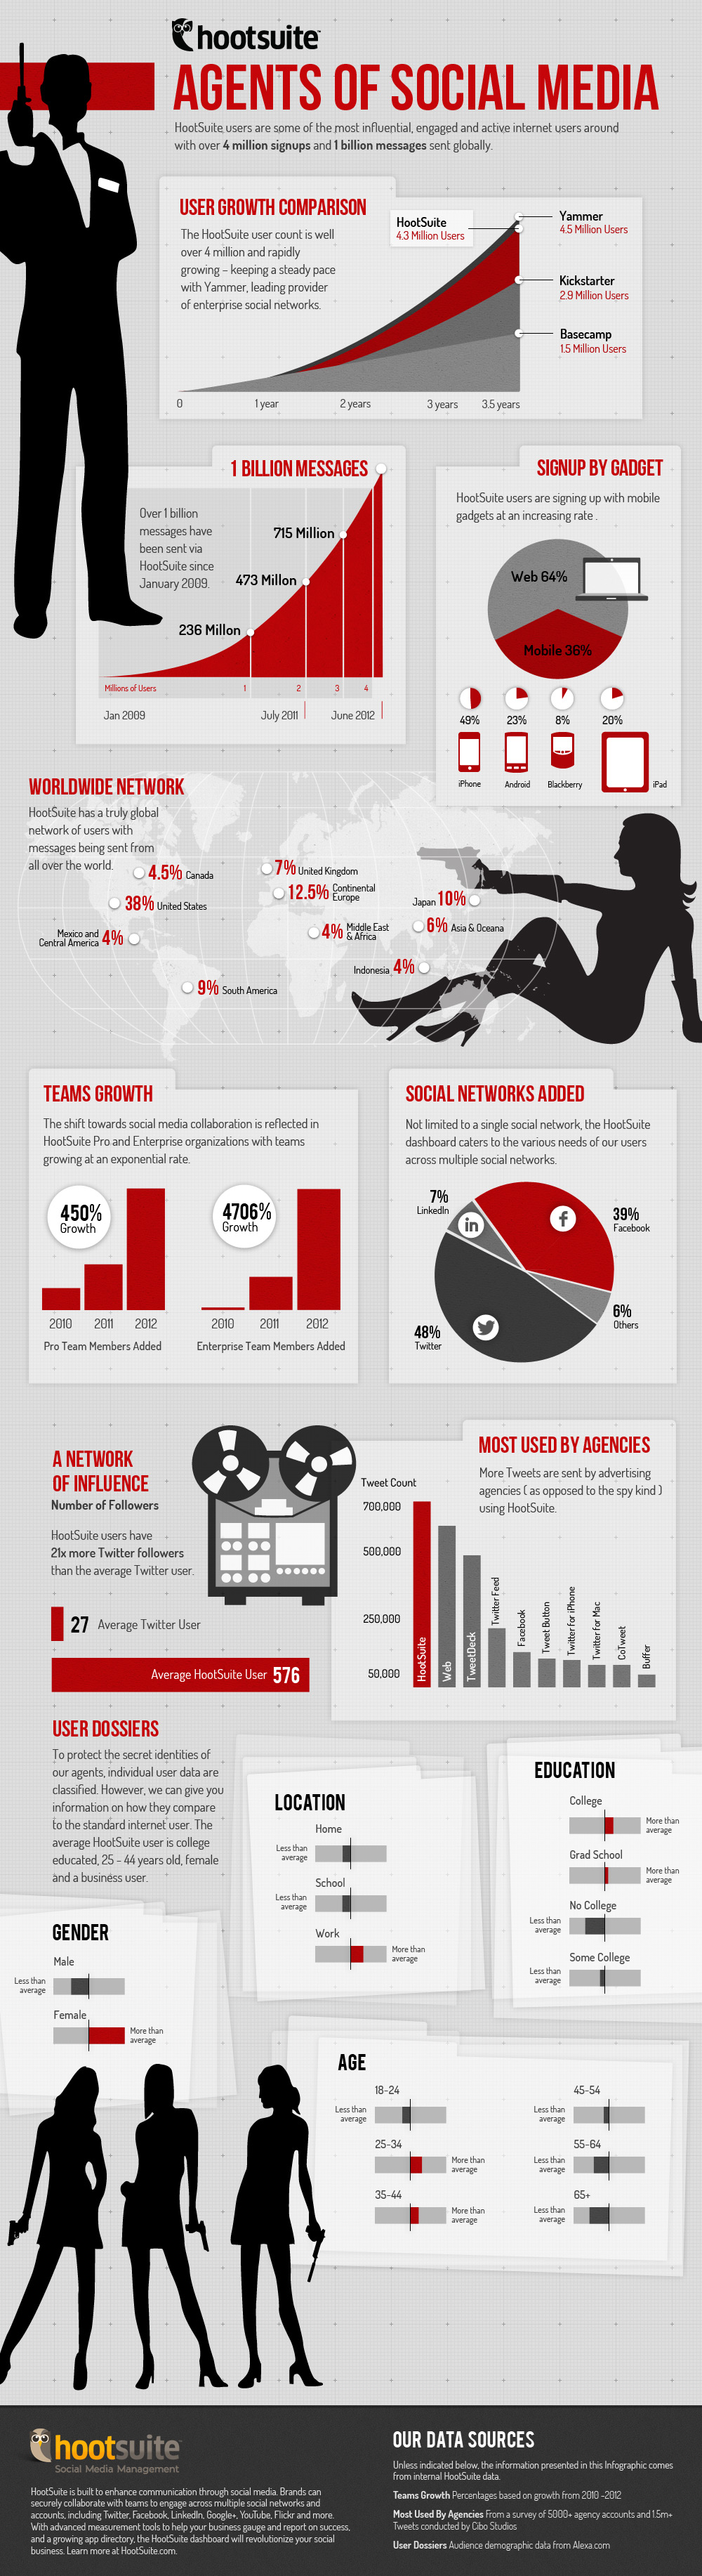 HootSuite Agents of Social Media Infographic